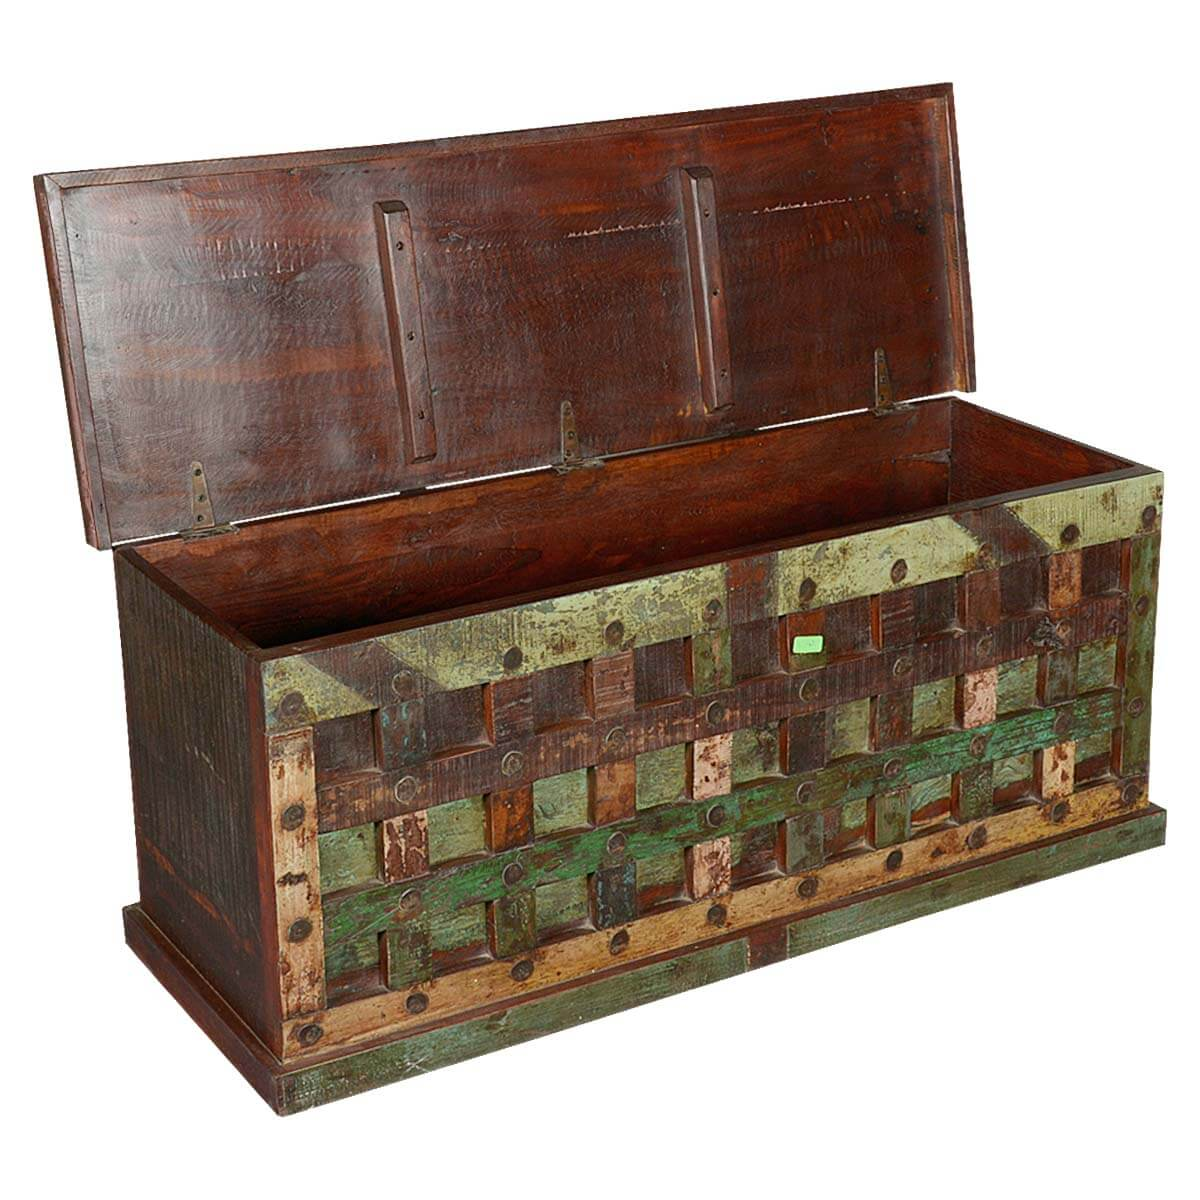 Wonderful image of  Collection Beaufort Rustic Reclaimed Wood Bed Storage Trunk Chest with #B26519 color and 1200x1200 pixels